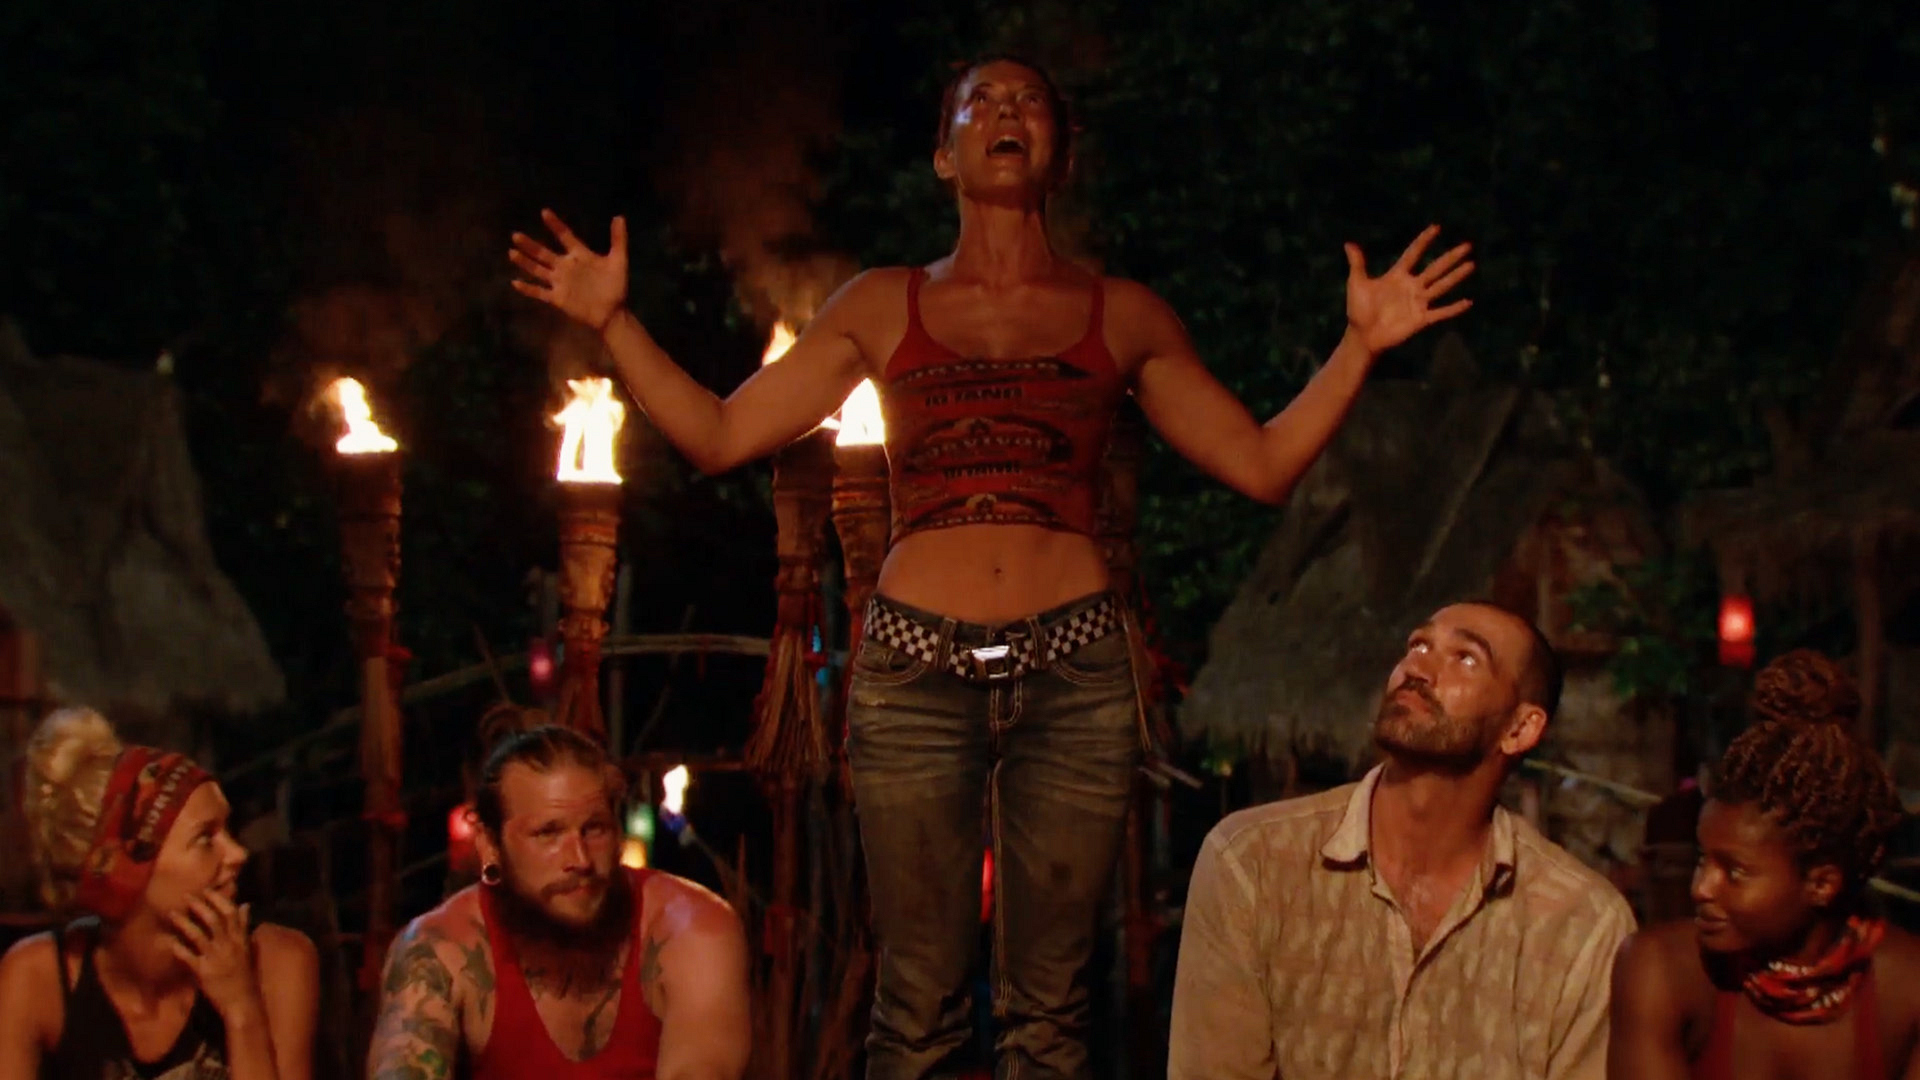 1. Take us back to Tribal Council. How blindsided were you to hear your name called?